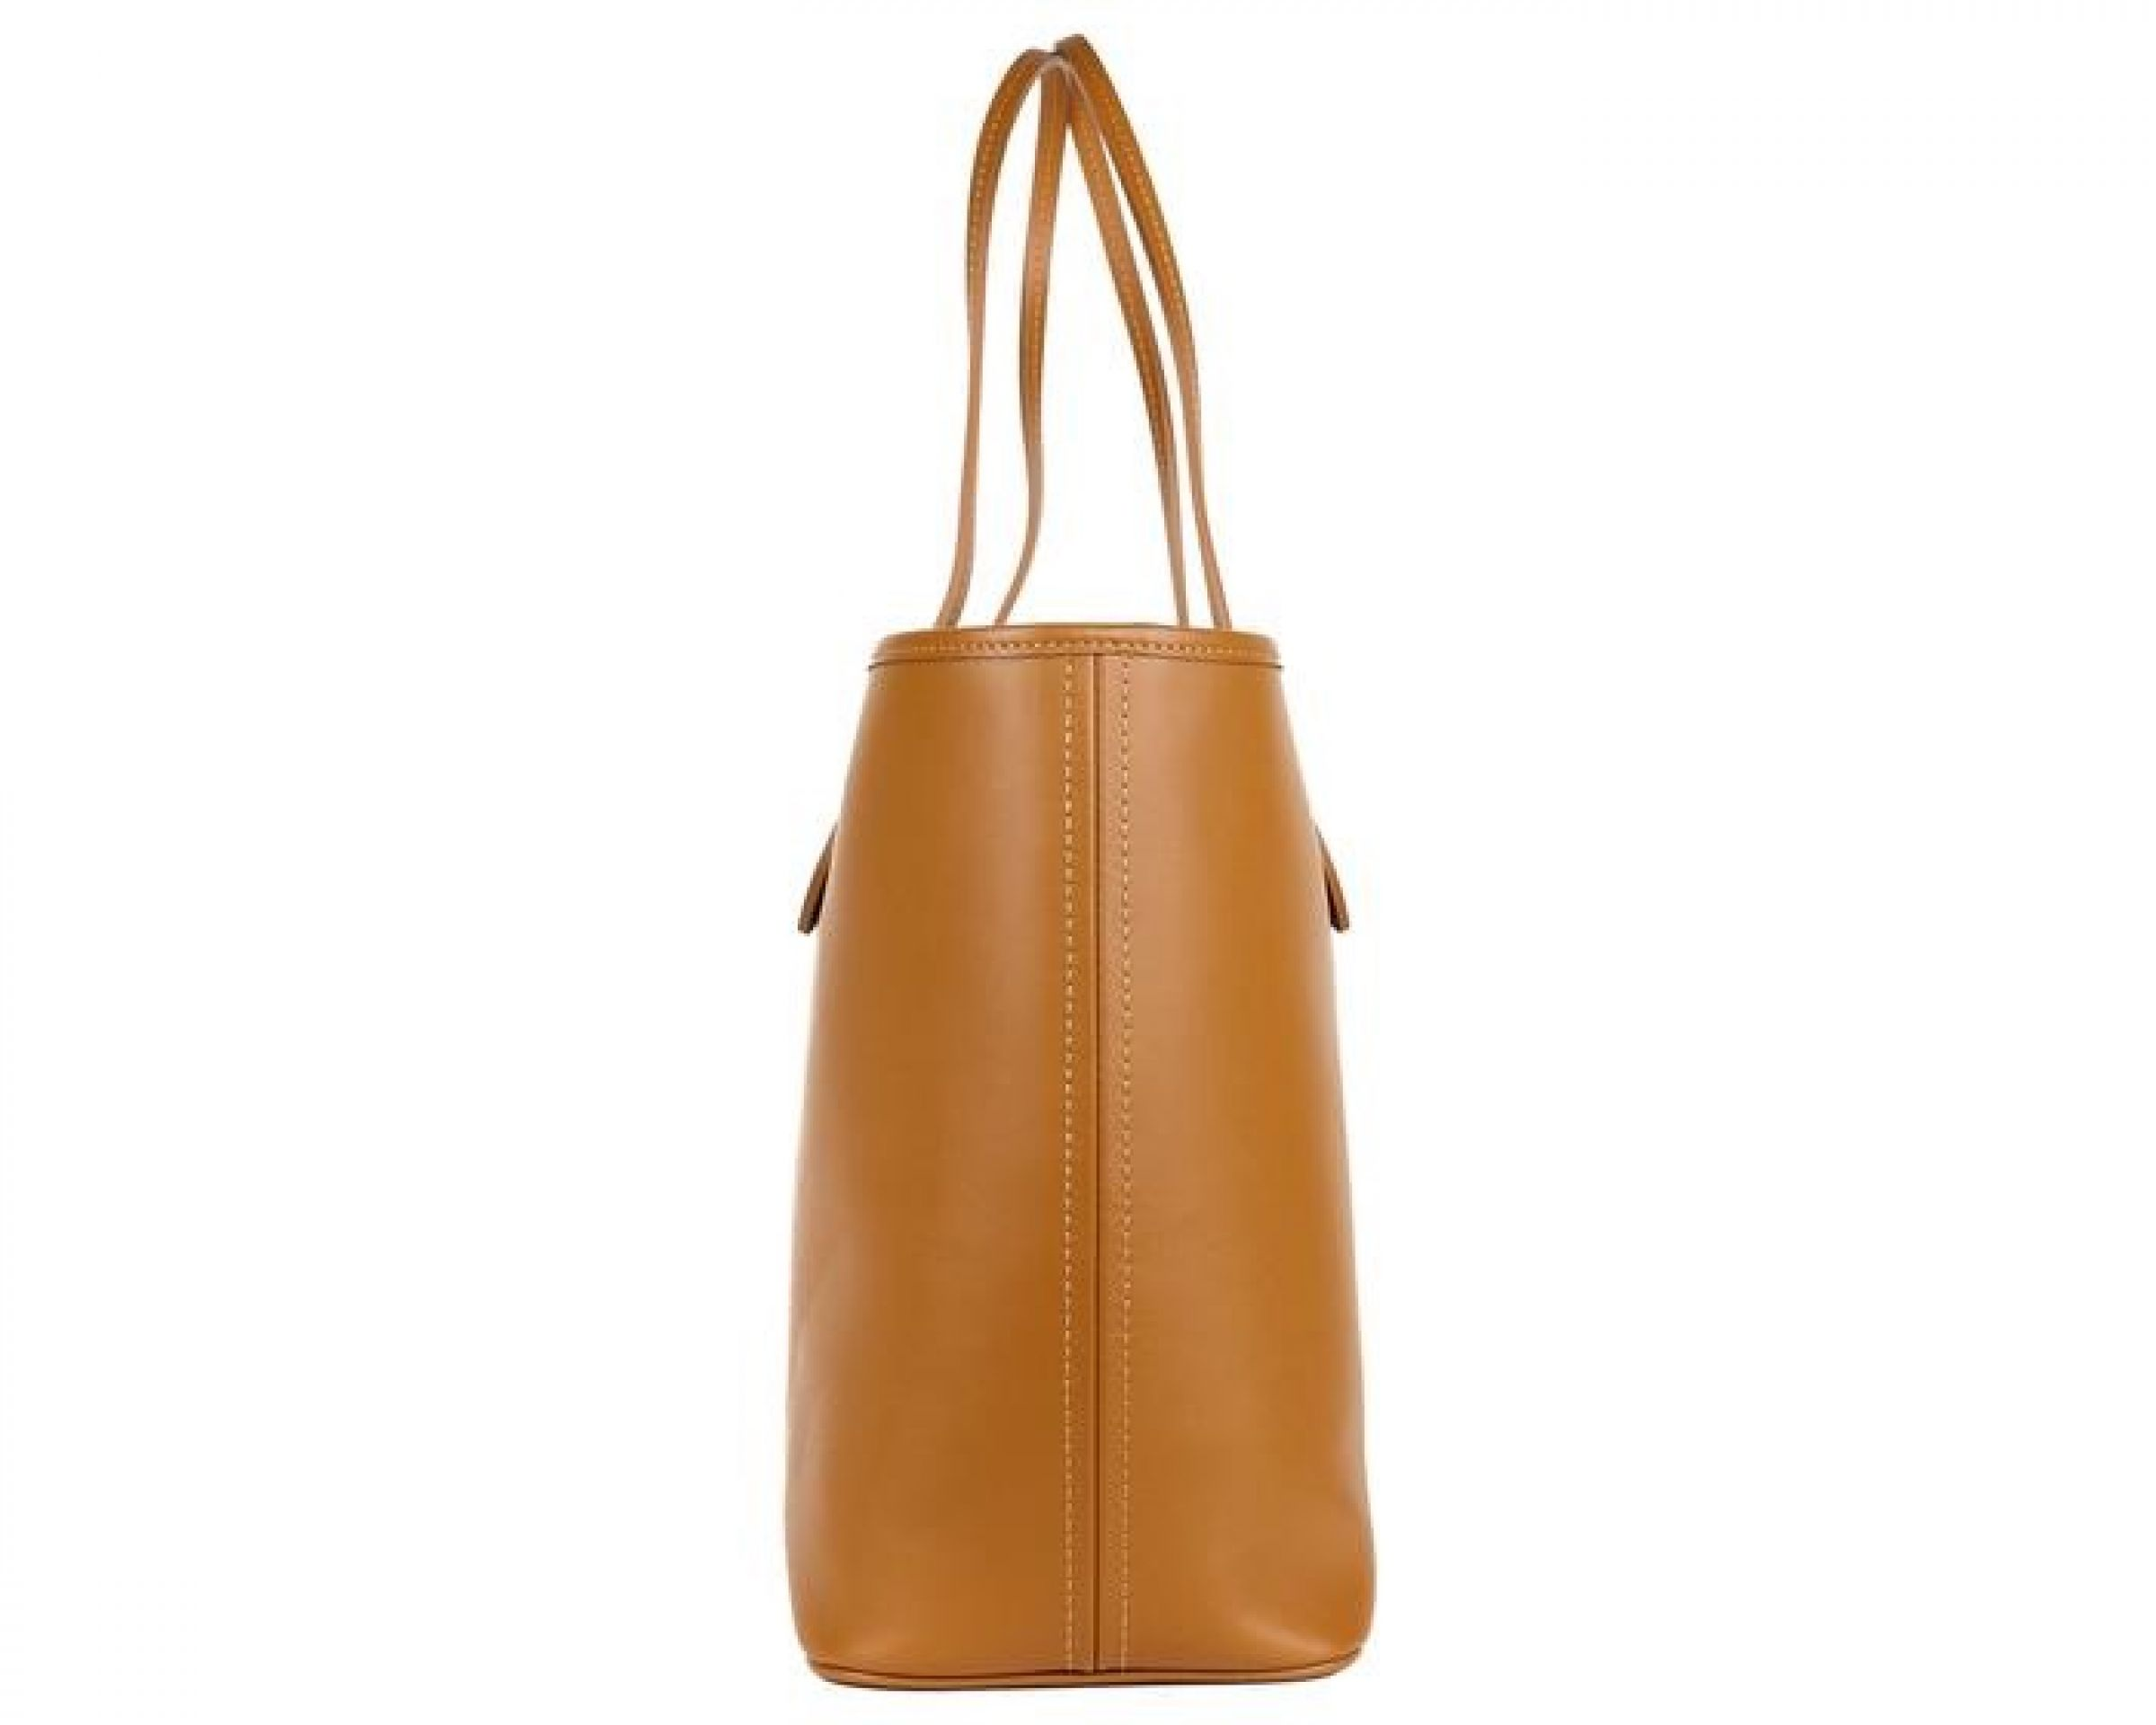 ROBERTO CAVALLI FIRENZE COGNAC BROWN LARGE LEATHER SHOPPING TOTE BAG